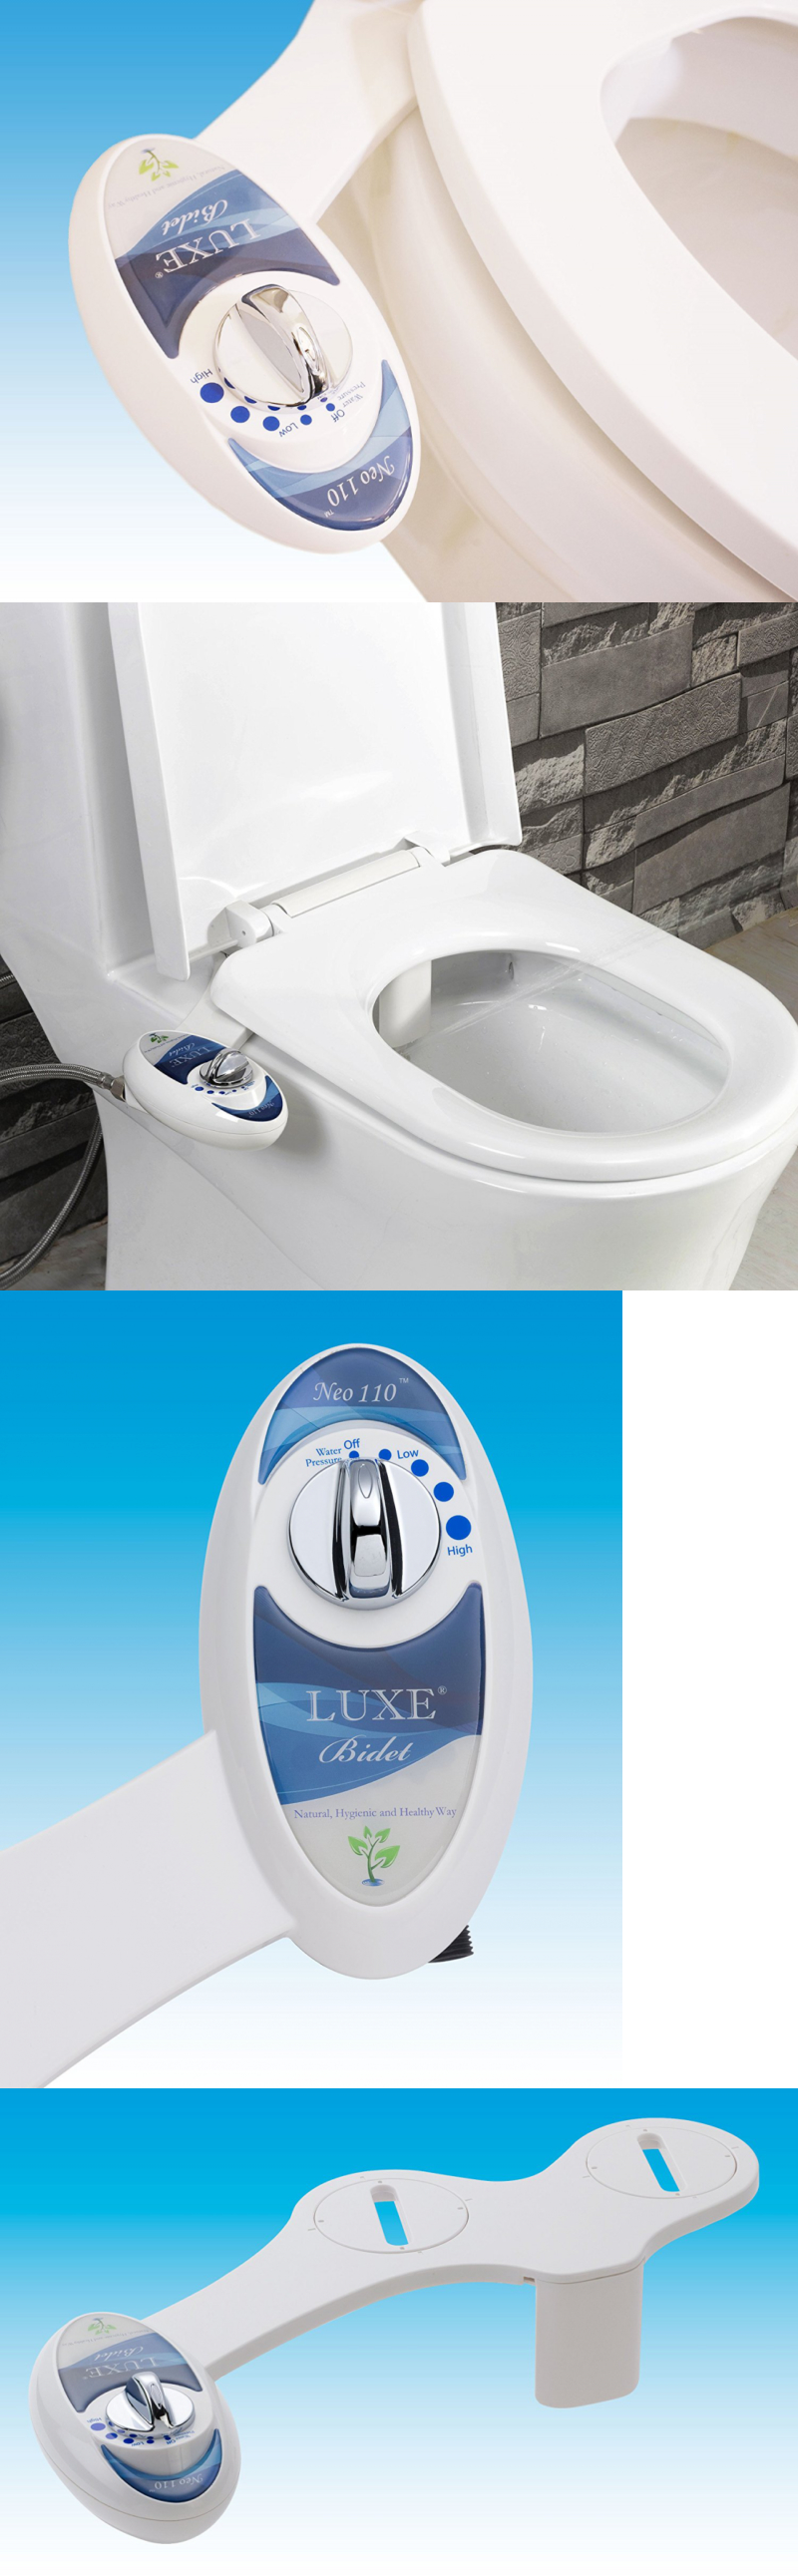 toilet bidets and toilet attachments